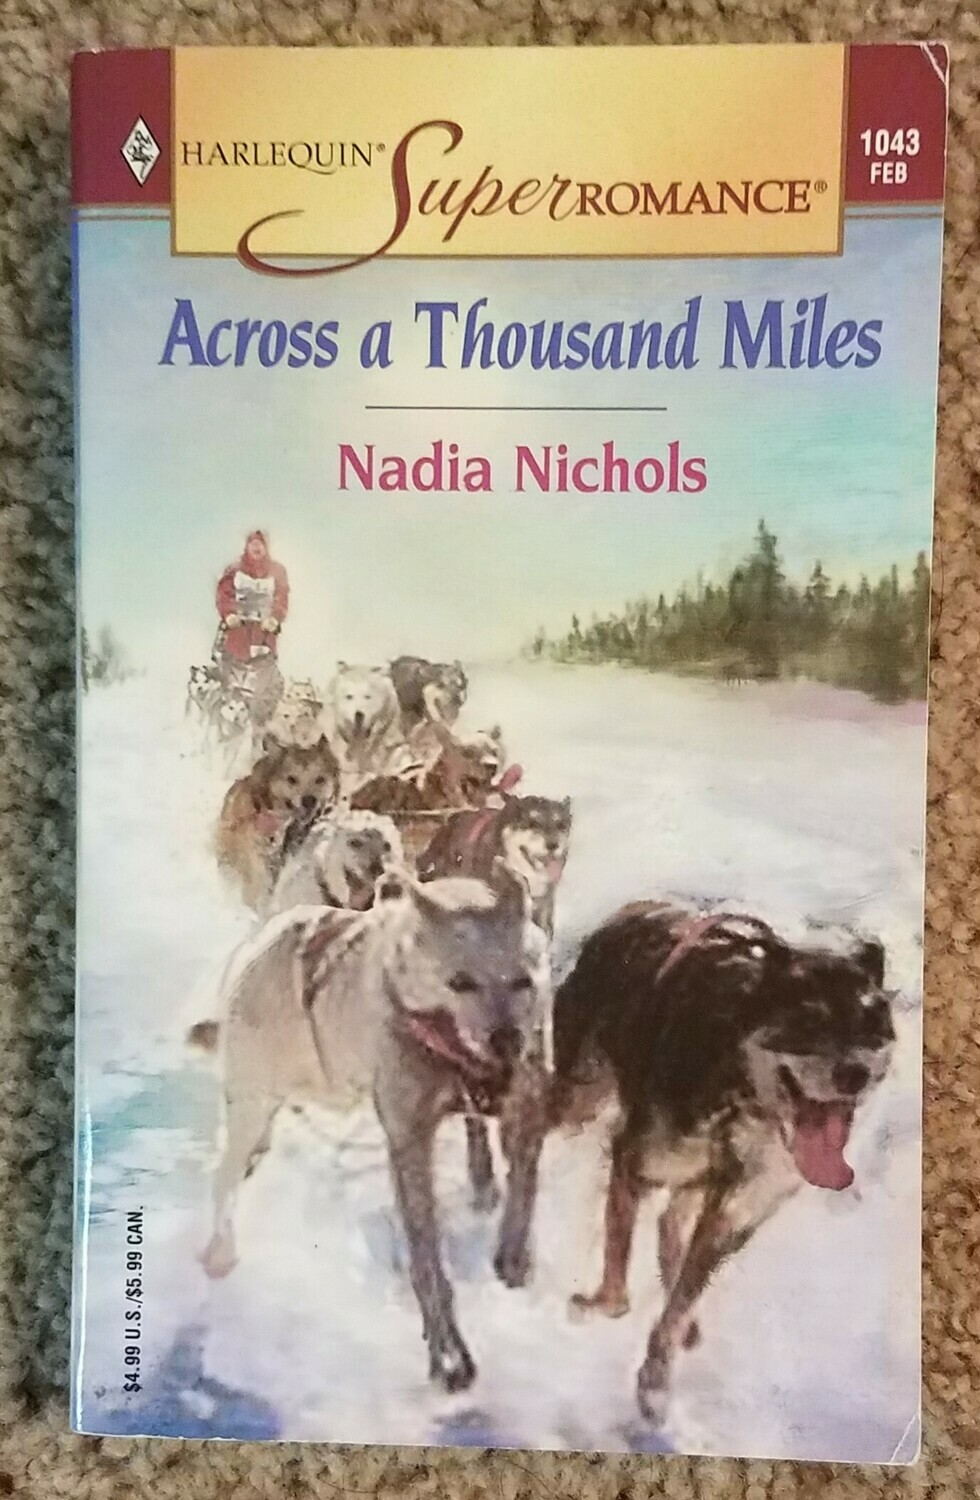 Across a Thousand Miles by Nadia Nichols